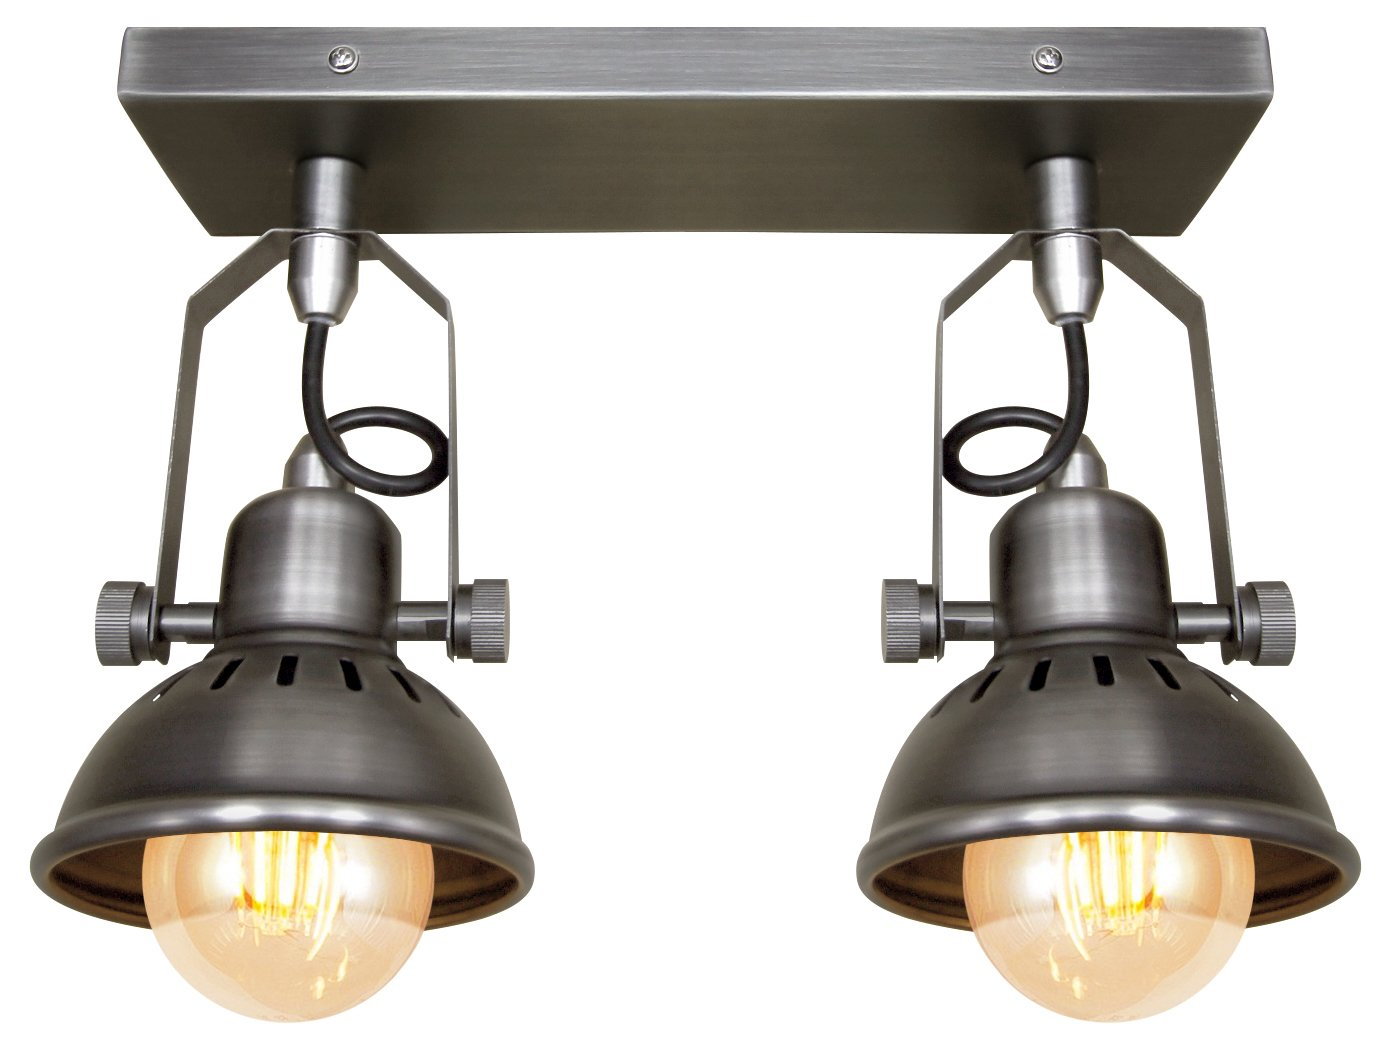 Industrial Vintage Twin Ceiling Light Fixture Dark Grey Pewter finish Brooklyn Style Adjustable Swivel Spot Lights made from Stainless Steel Long Life Lamp Company M005-2C